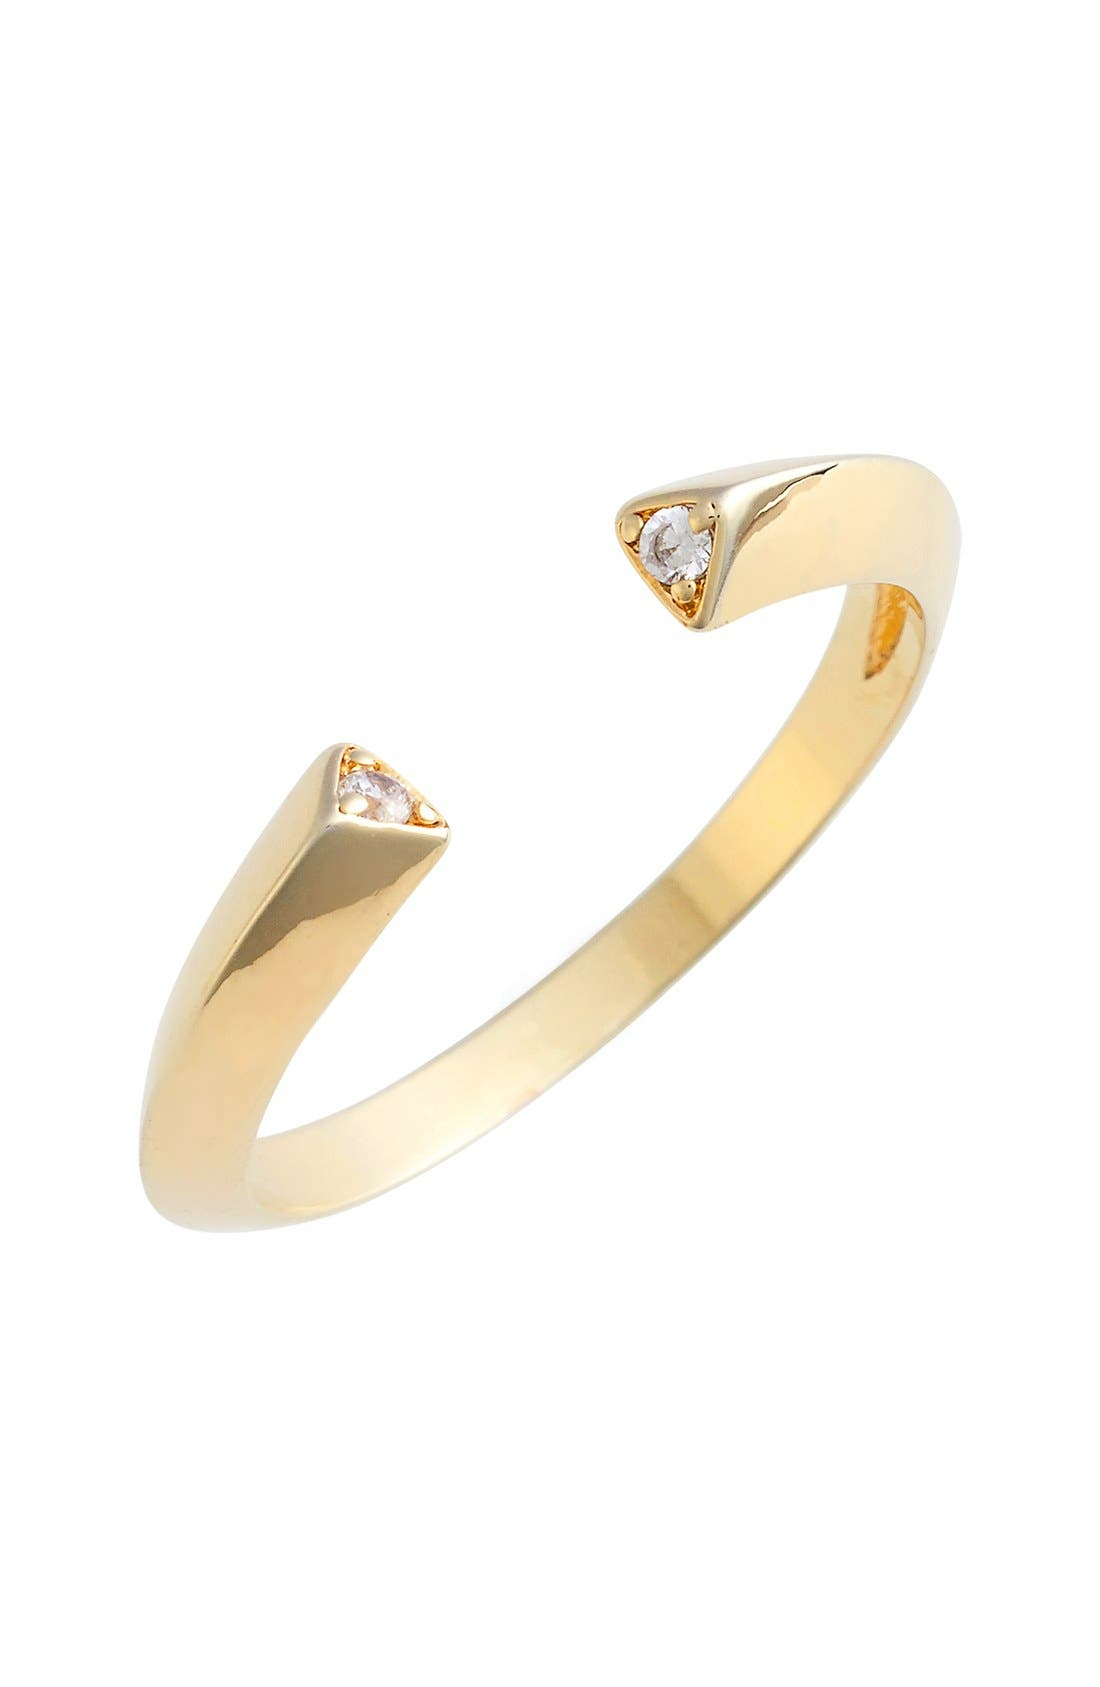 Main Image - Jules Smith Pavé Triangle Ring